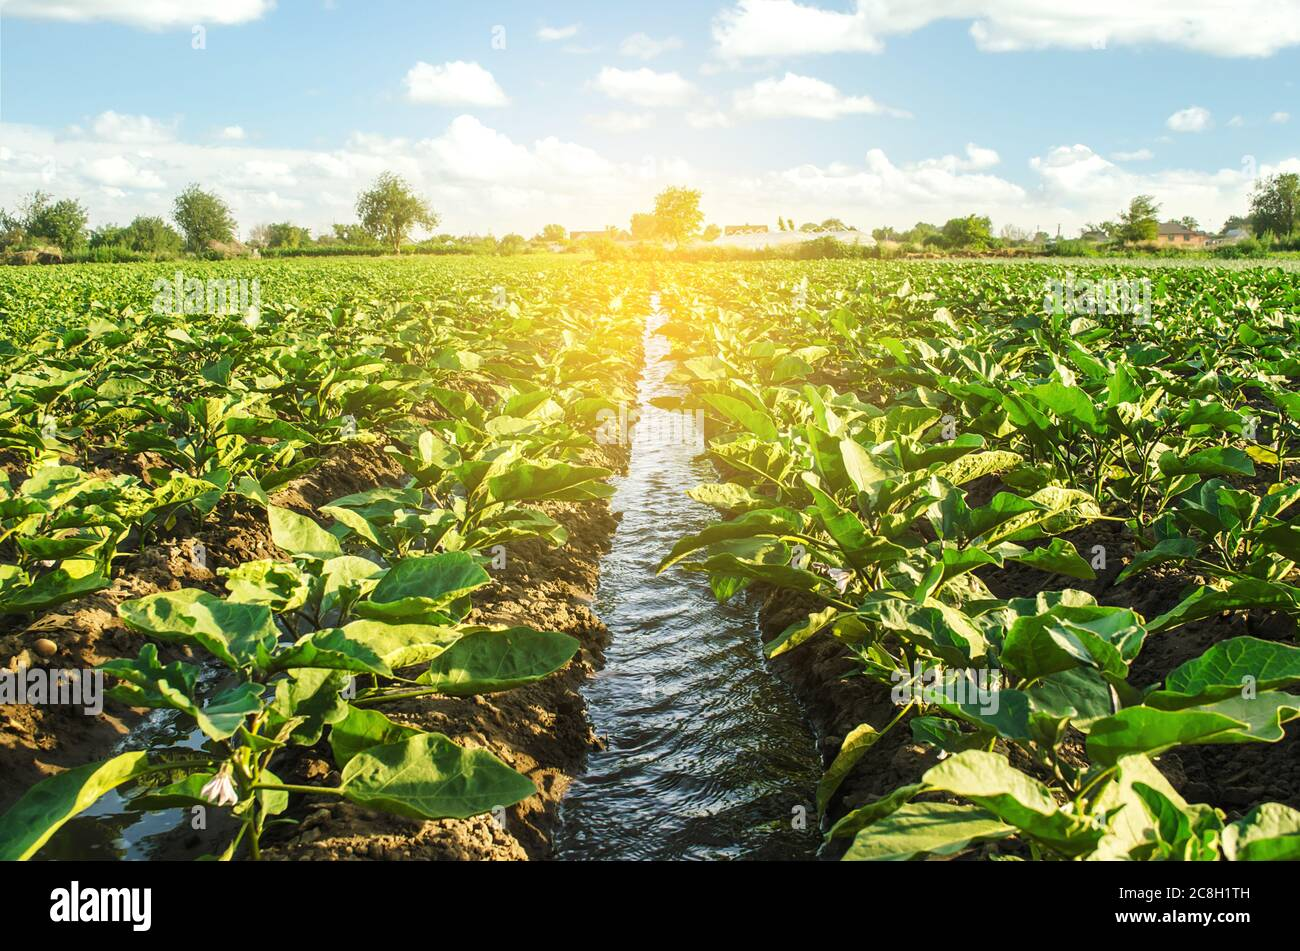 An irrigation water canal passes through the eggplant plantation. Caring for plants, growing food. Agriculture and agribusiness. Conservation of water Stock Photo